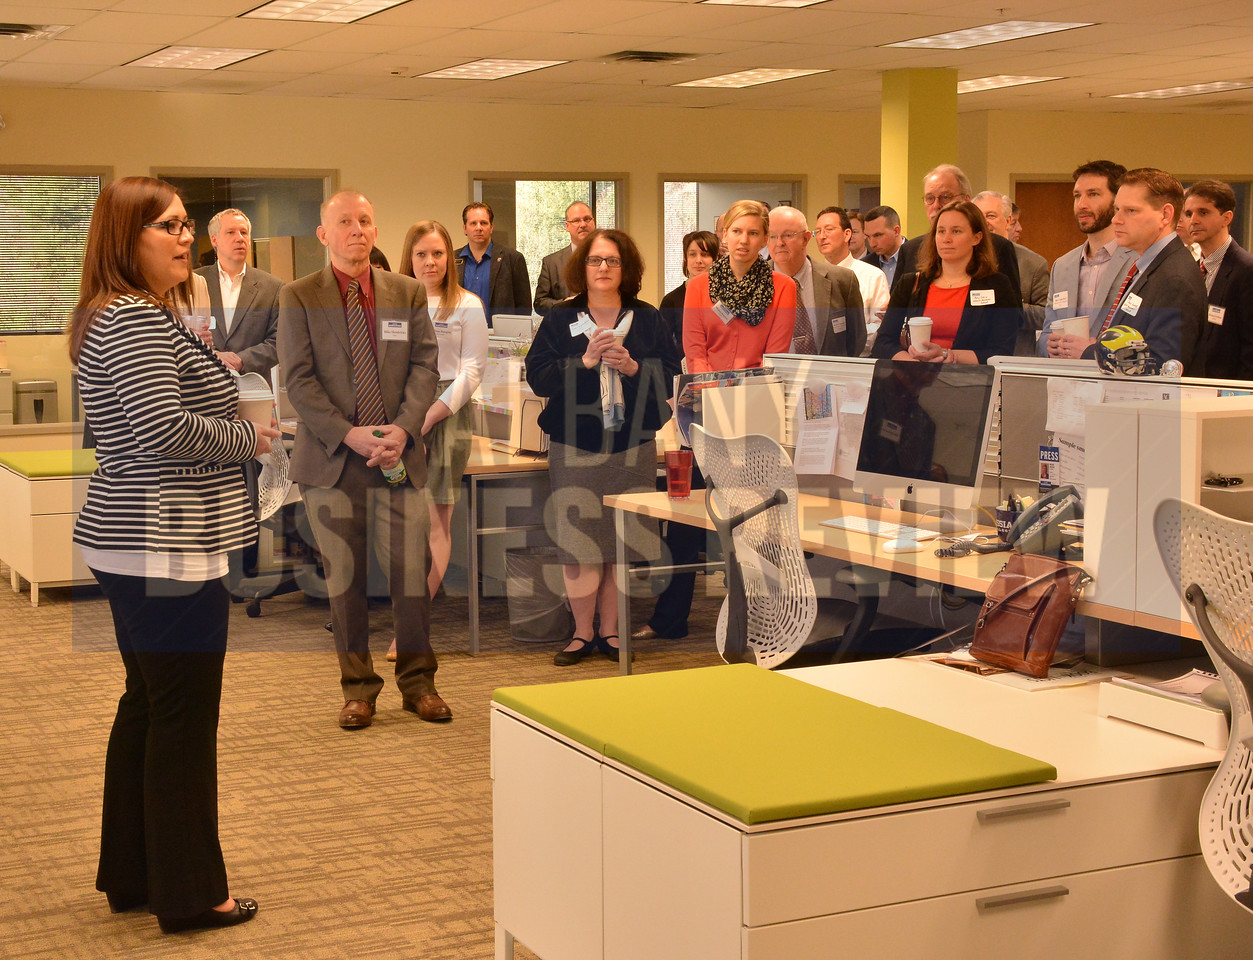 4-4-2014, Meet the Newsroom event